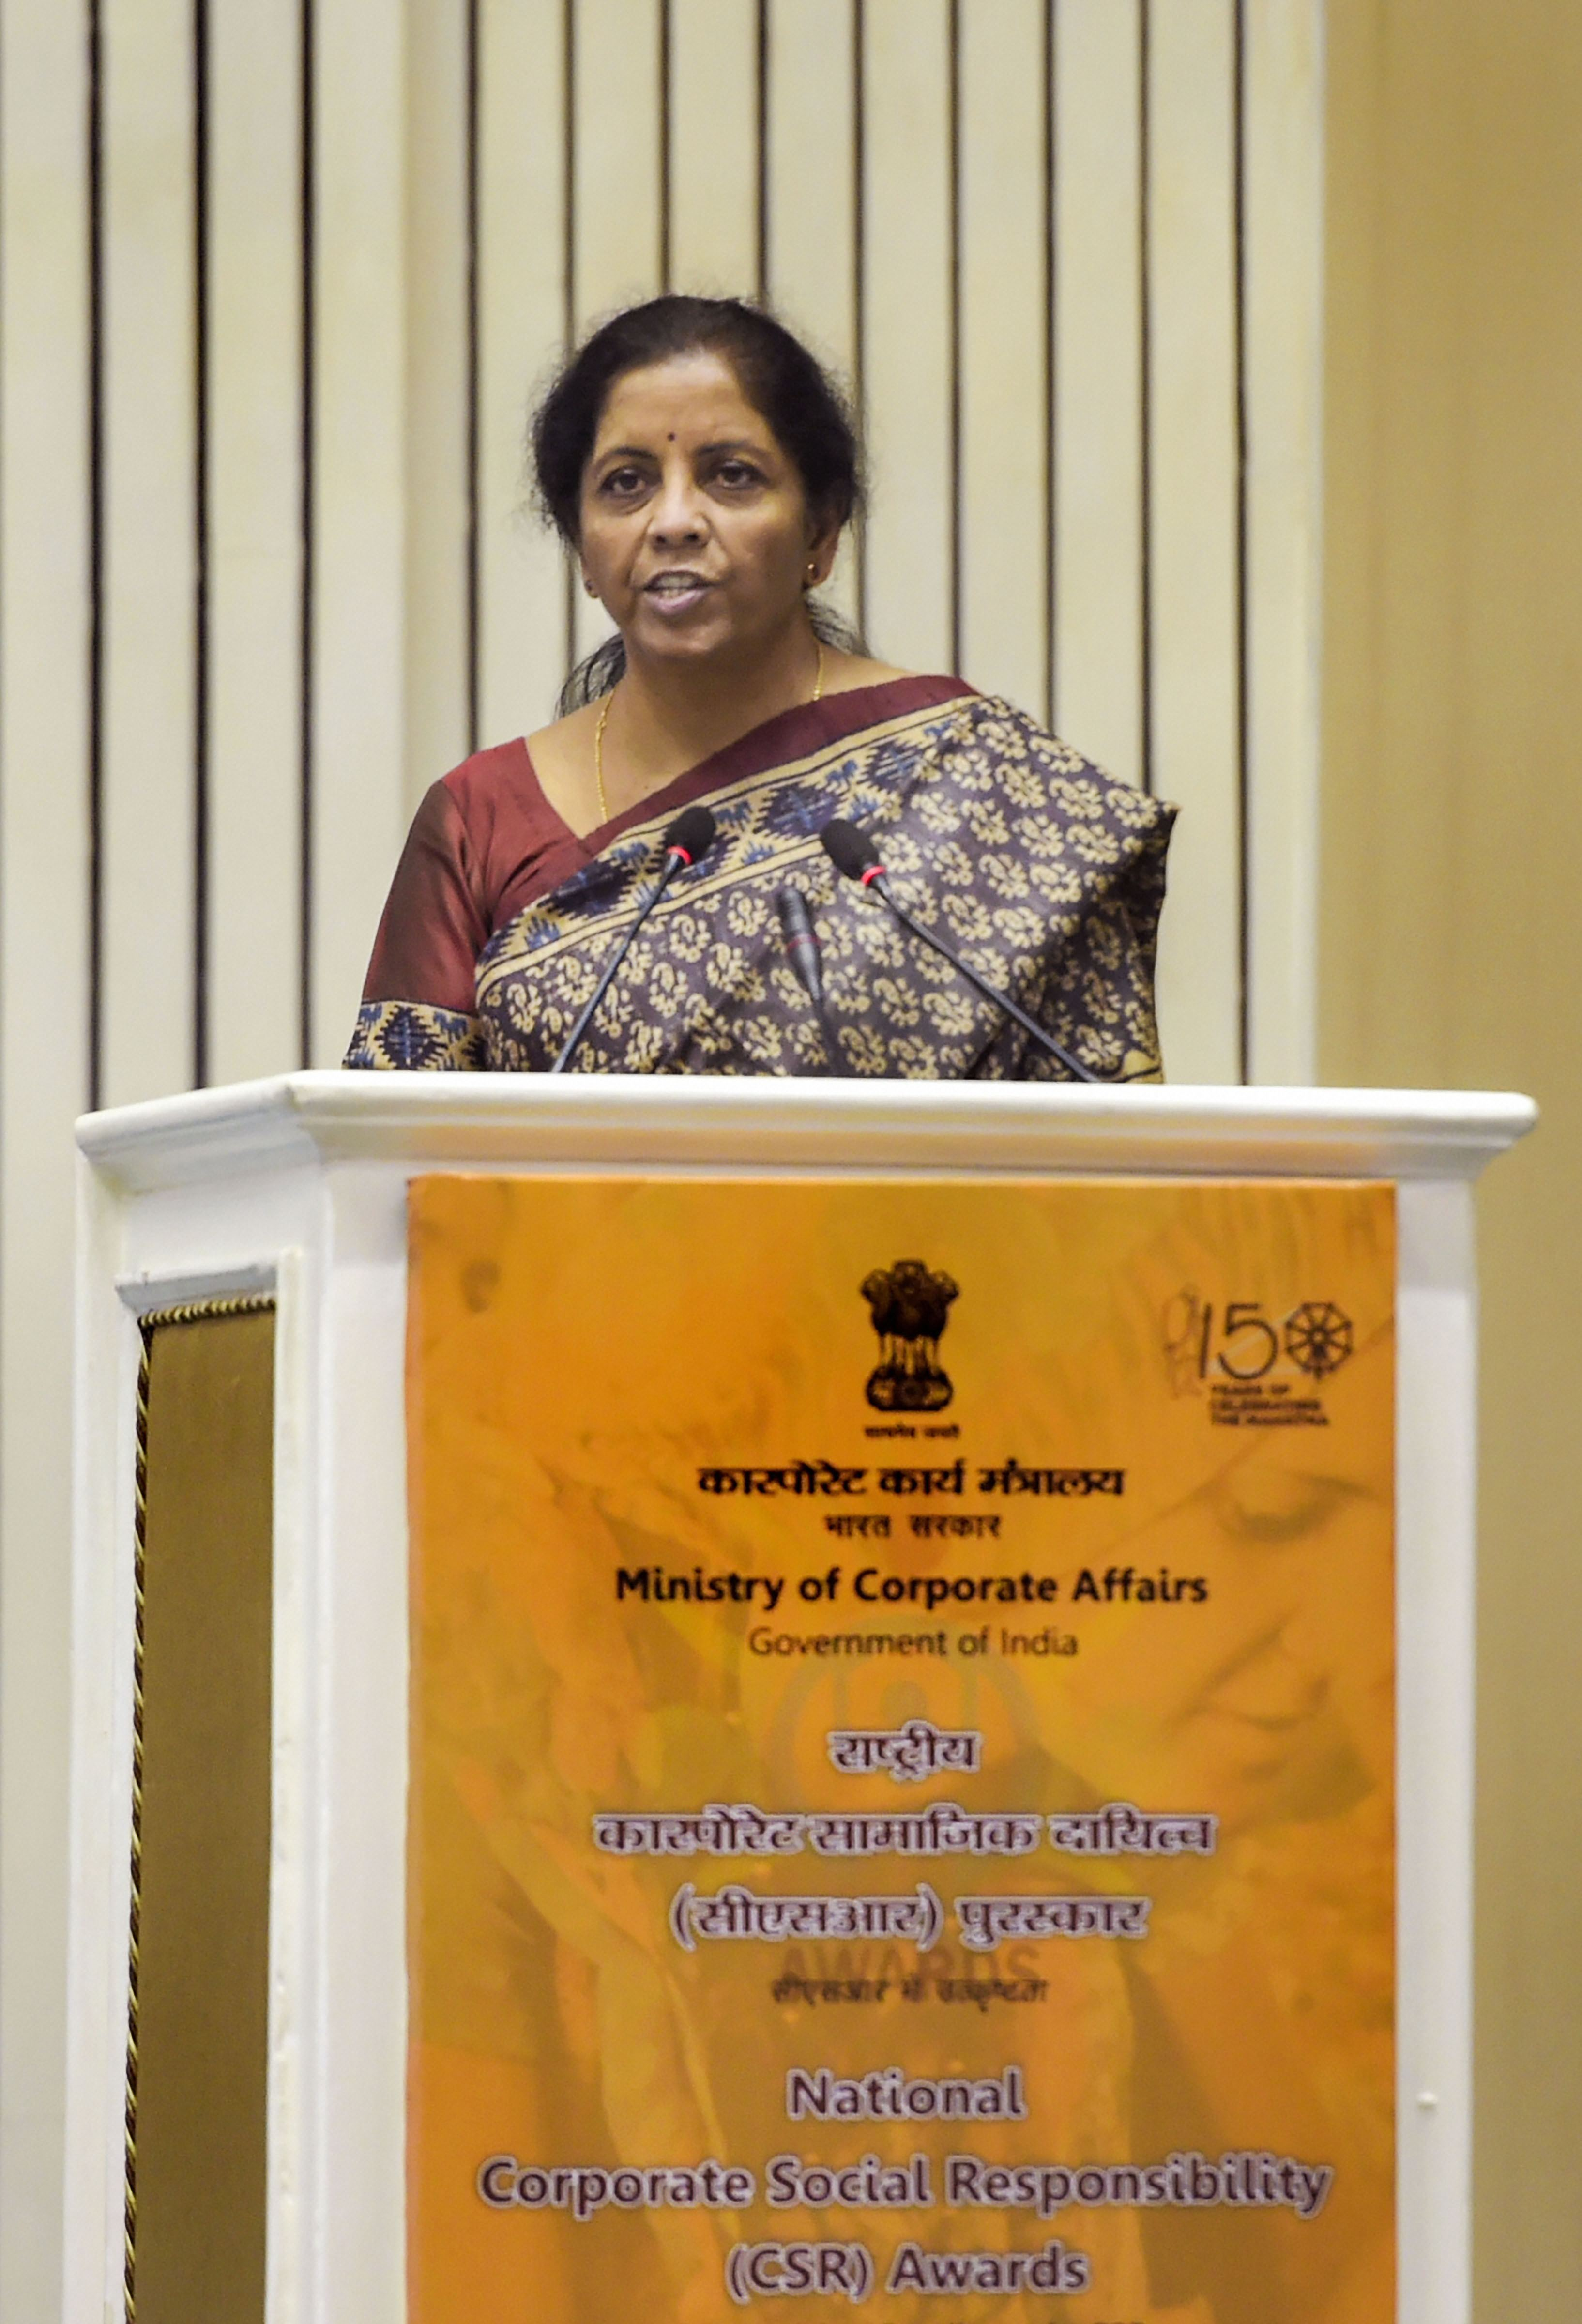 Union finance minister Nirmala Sitharaman addresses the National Corporate Social Responsibility Awards function in New Delhi, Tuesday, October 29, 2019.